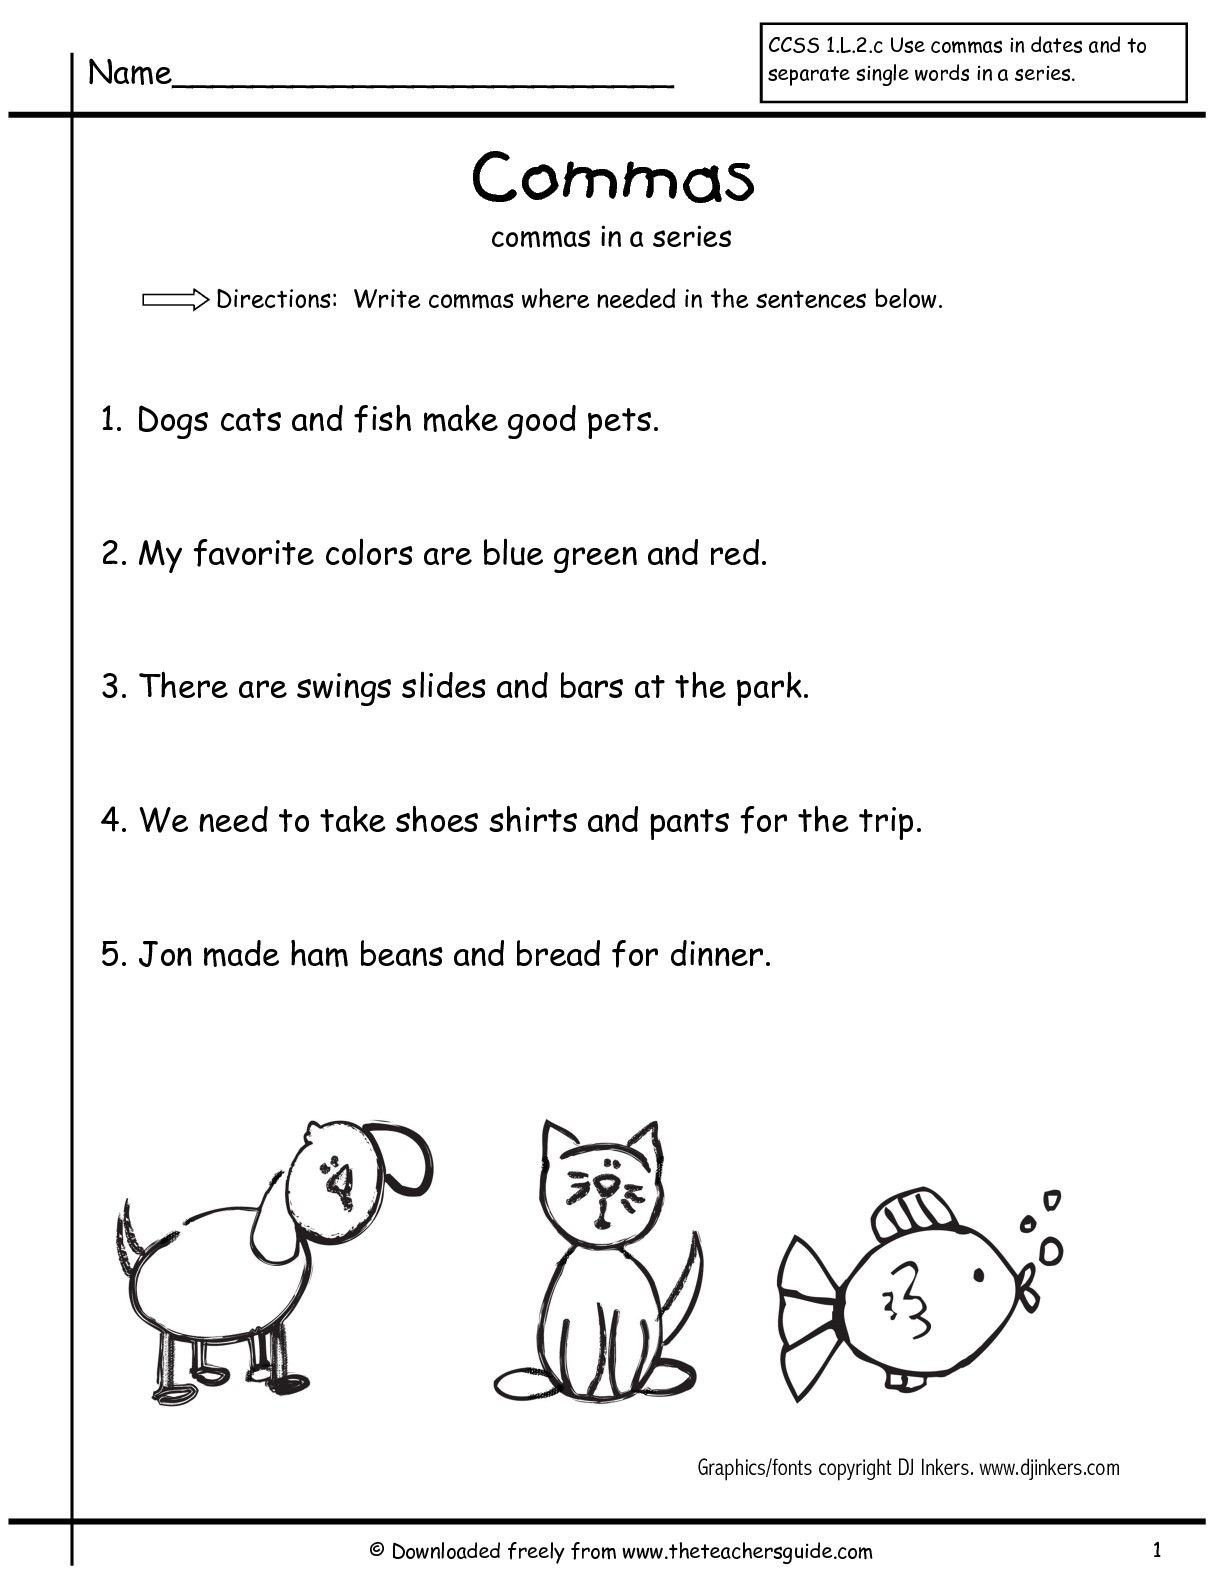 Commas Worksheet 3rd Grade Wonders Second Grade Unit Two Week E Printouts